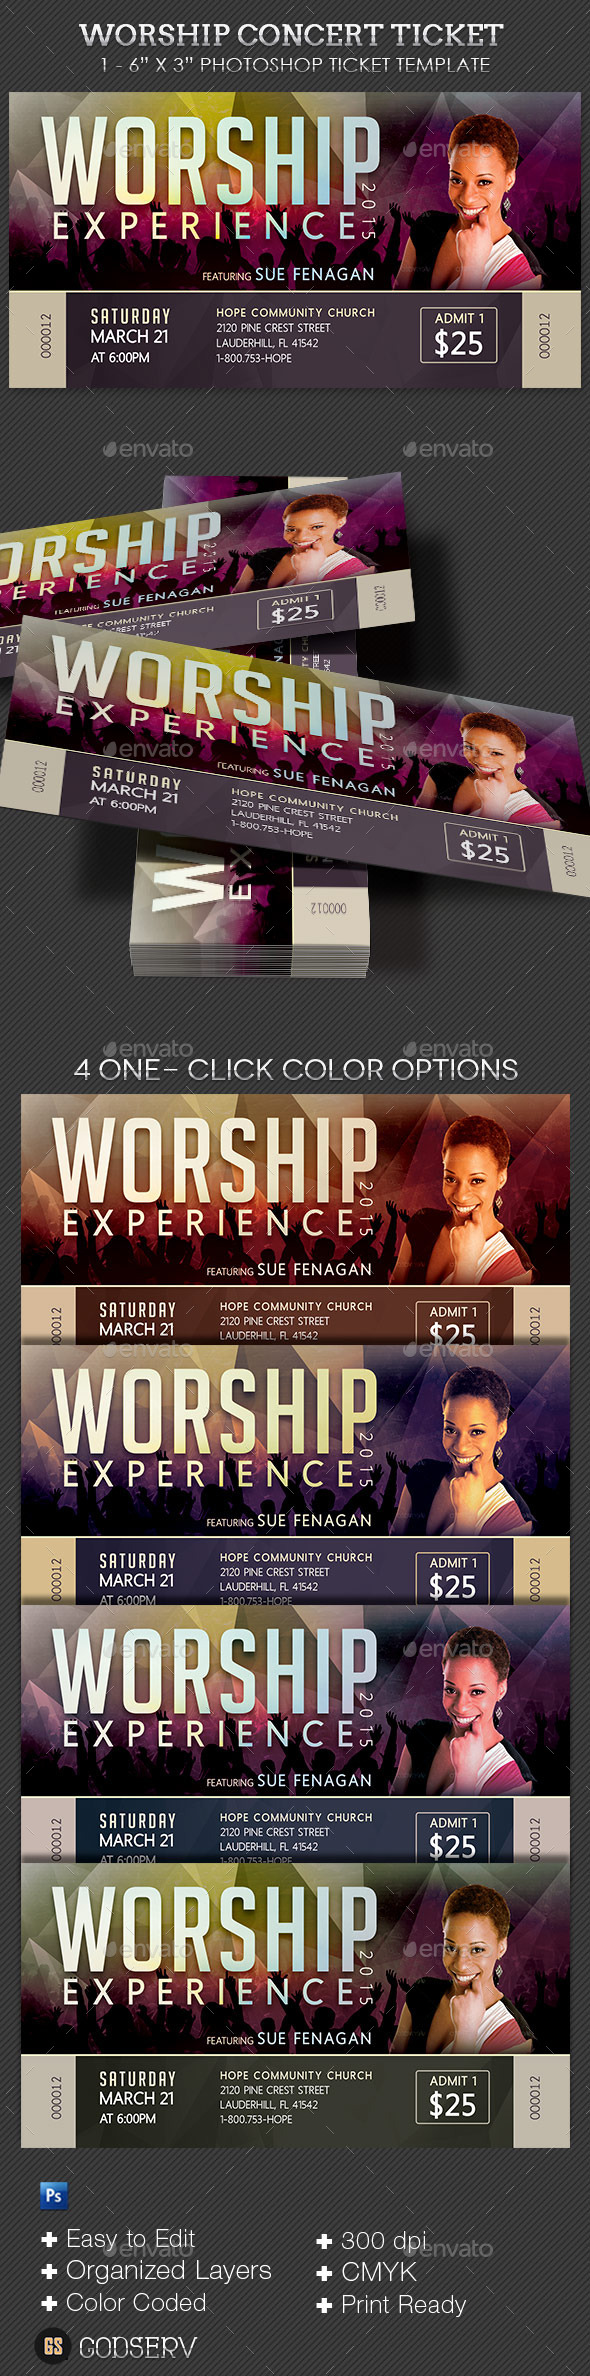 Worship Concert Ticket Template by Godserv GraphicRiver